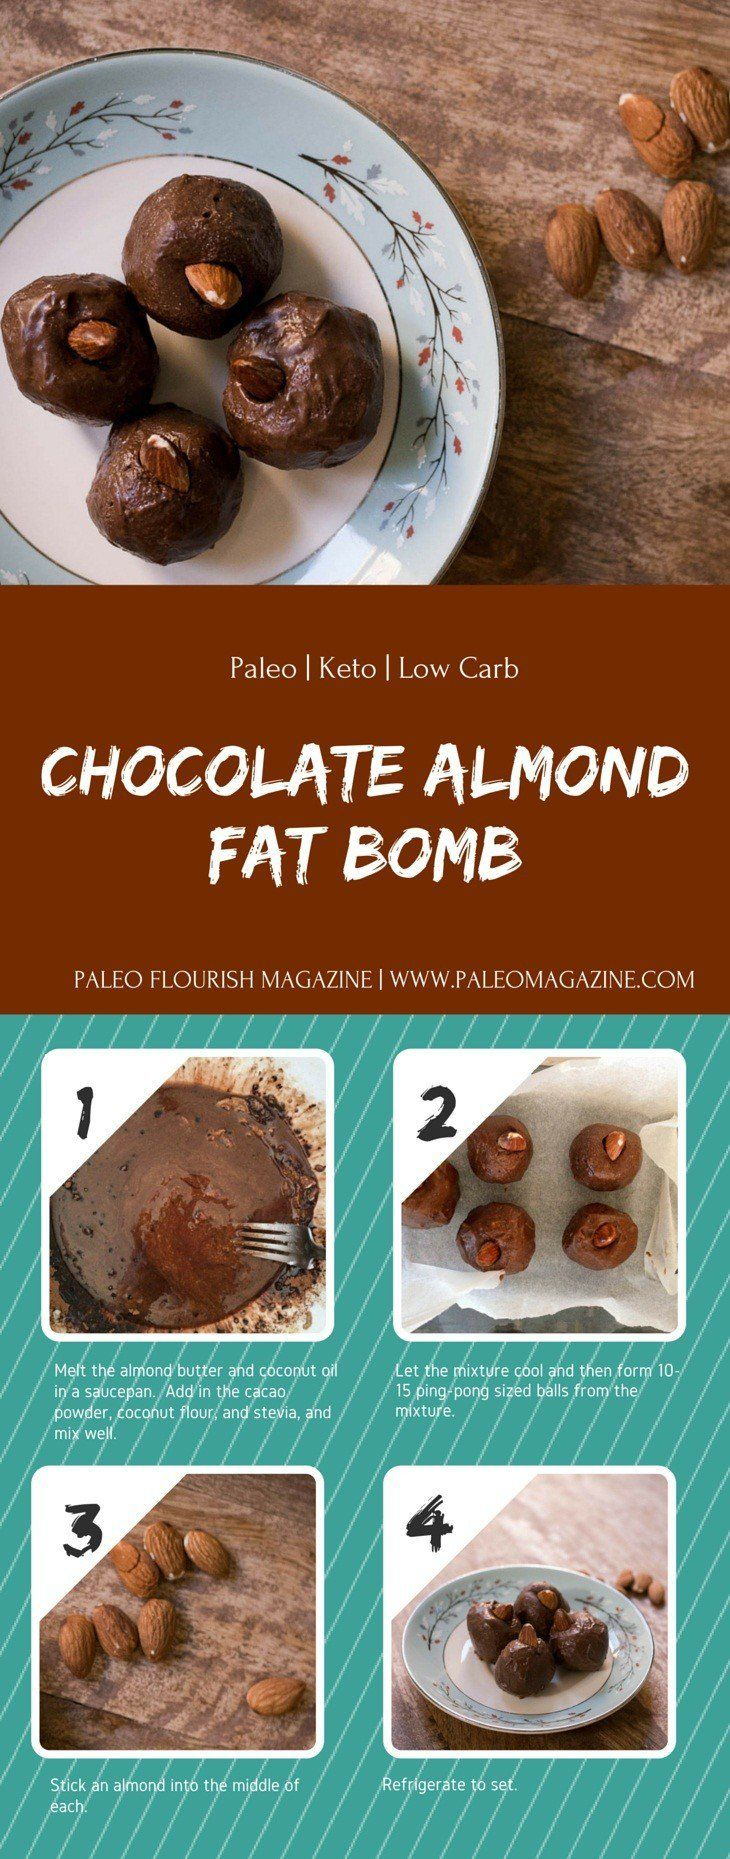 Food faith amp design thanksgiving goodies - Chocolate Almond Fat Bomb Recipe Paleo Keto Low Carb Paleo